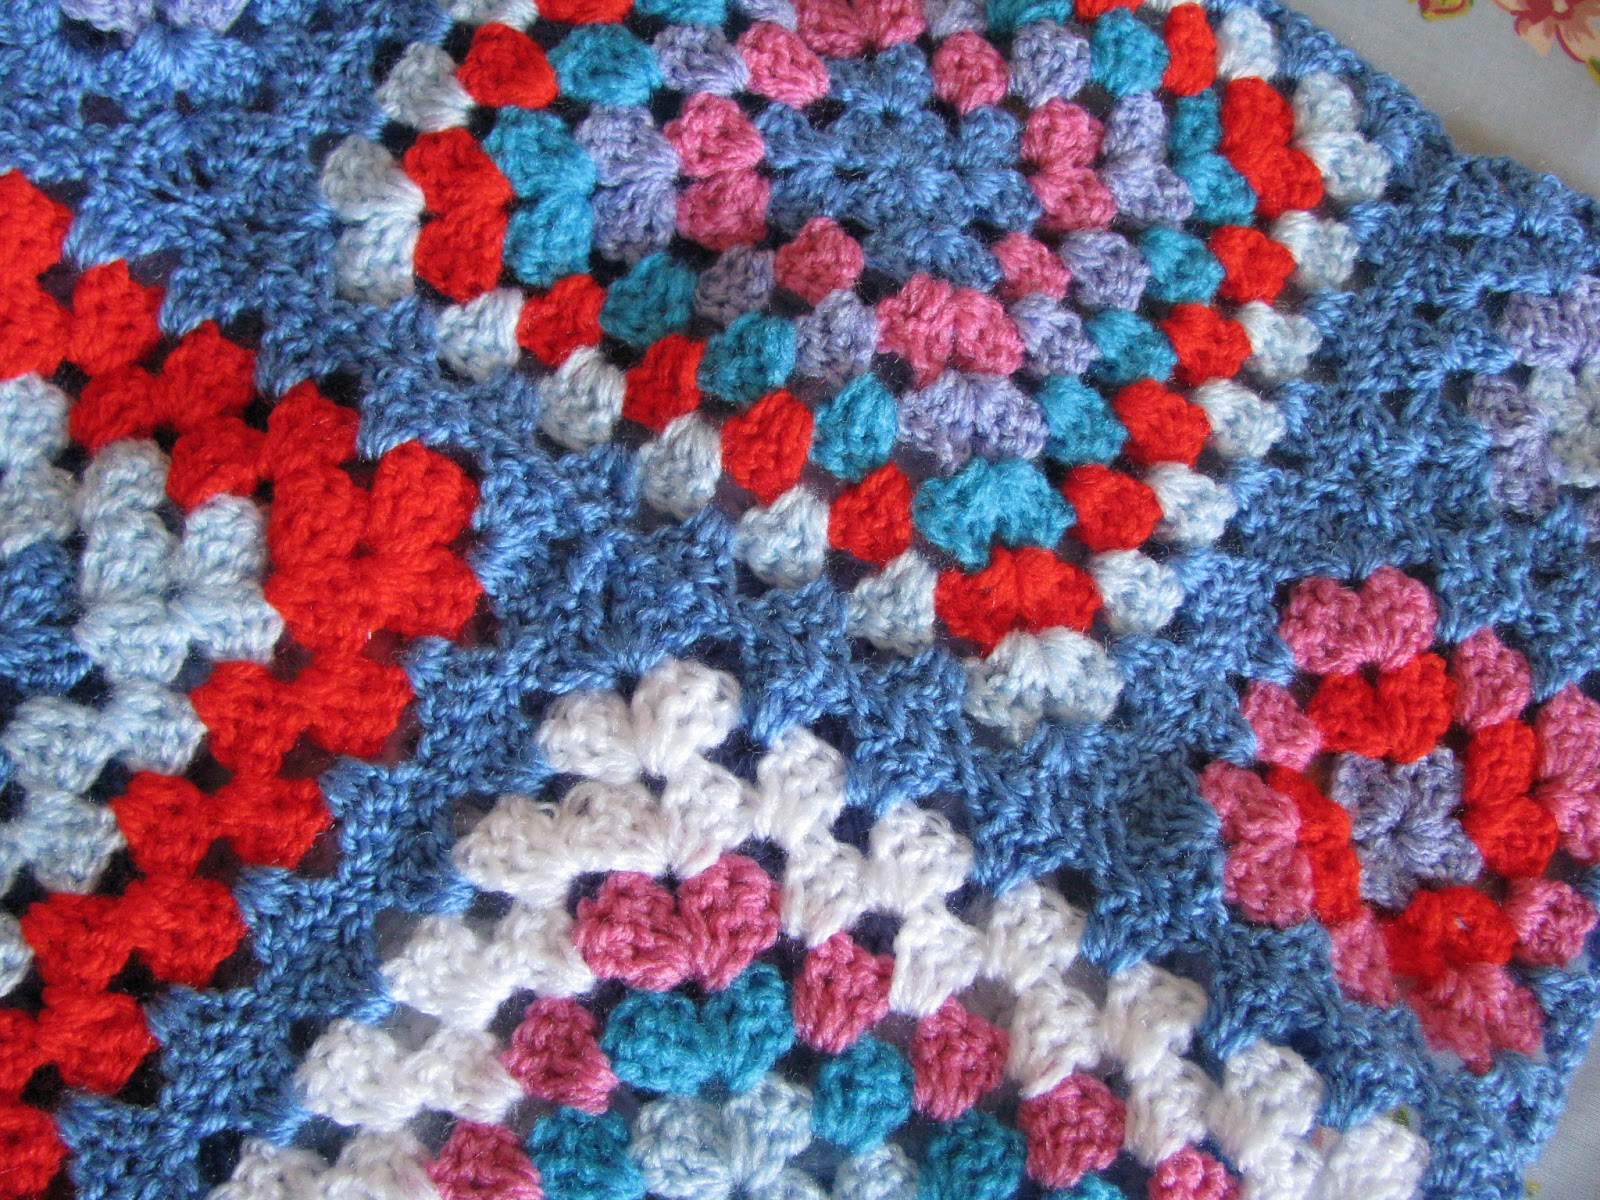 Crochet Granny Square : Crochet Granny Squares Patterns myideasbedroom.com